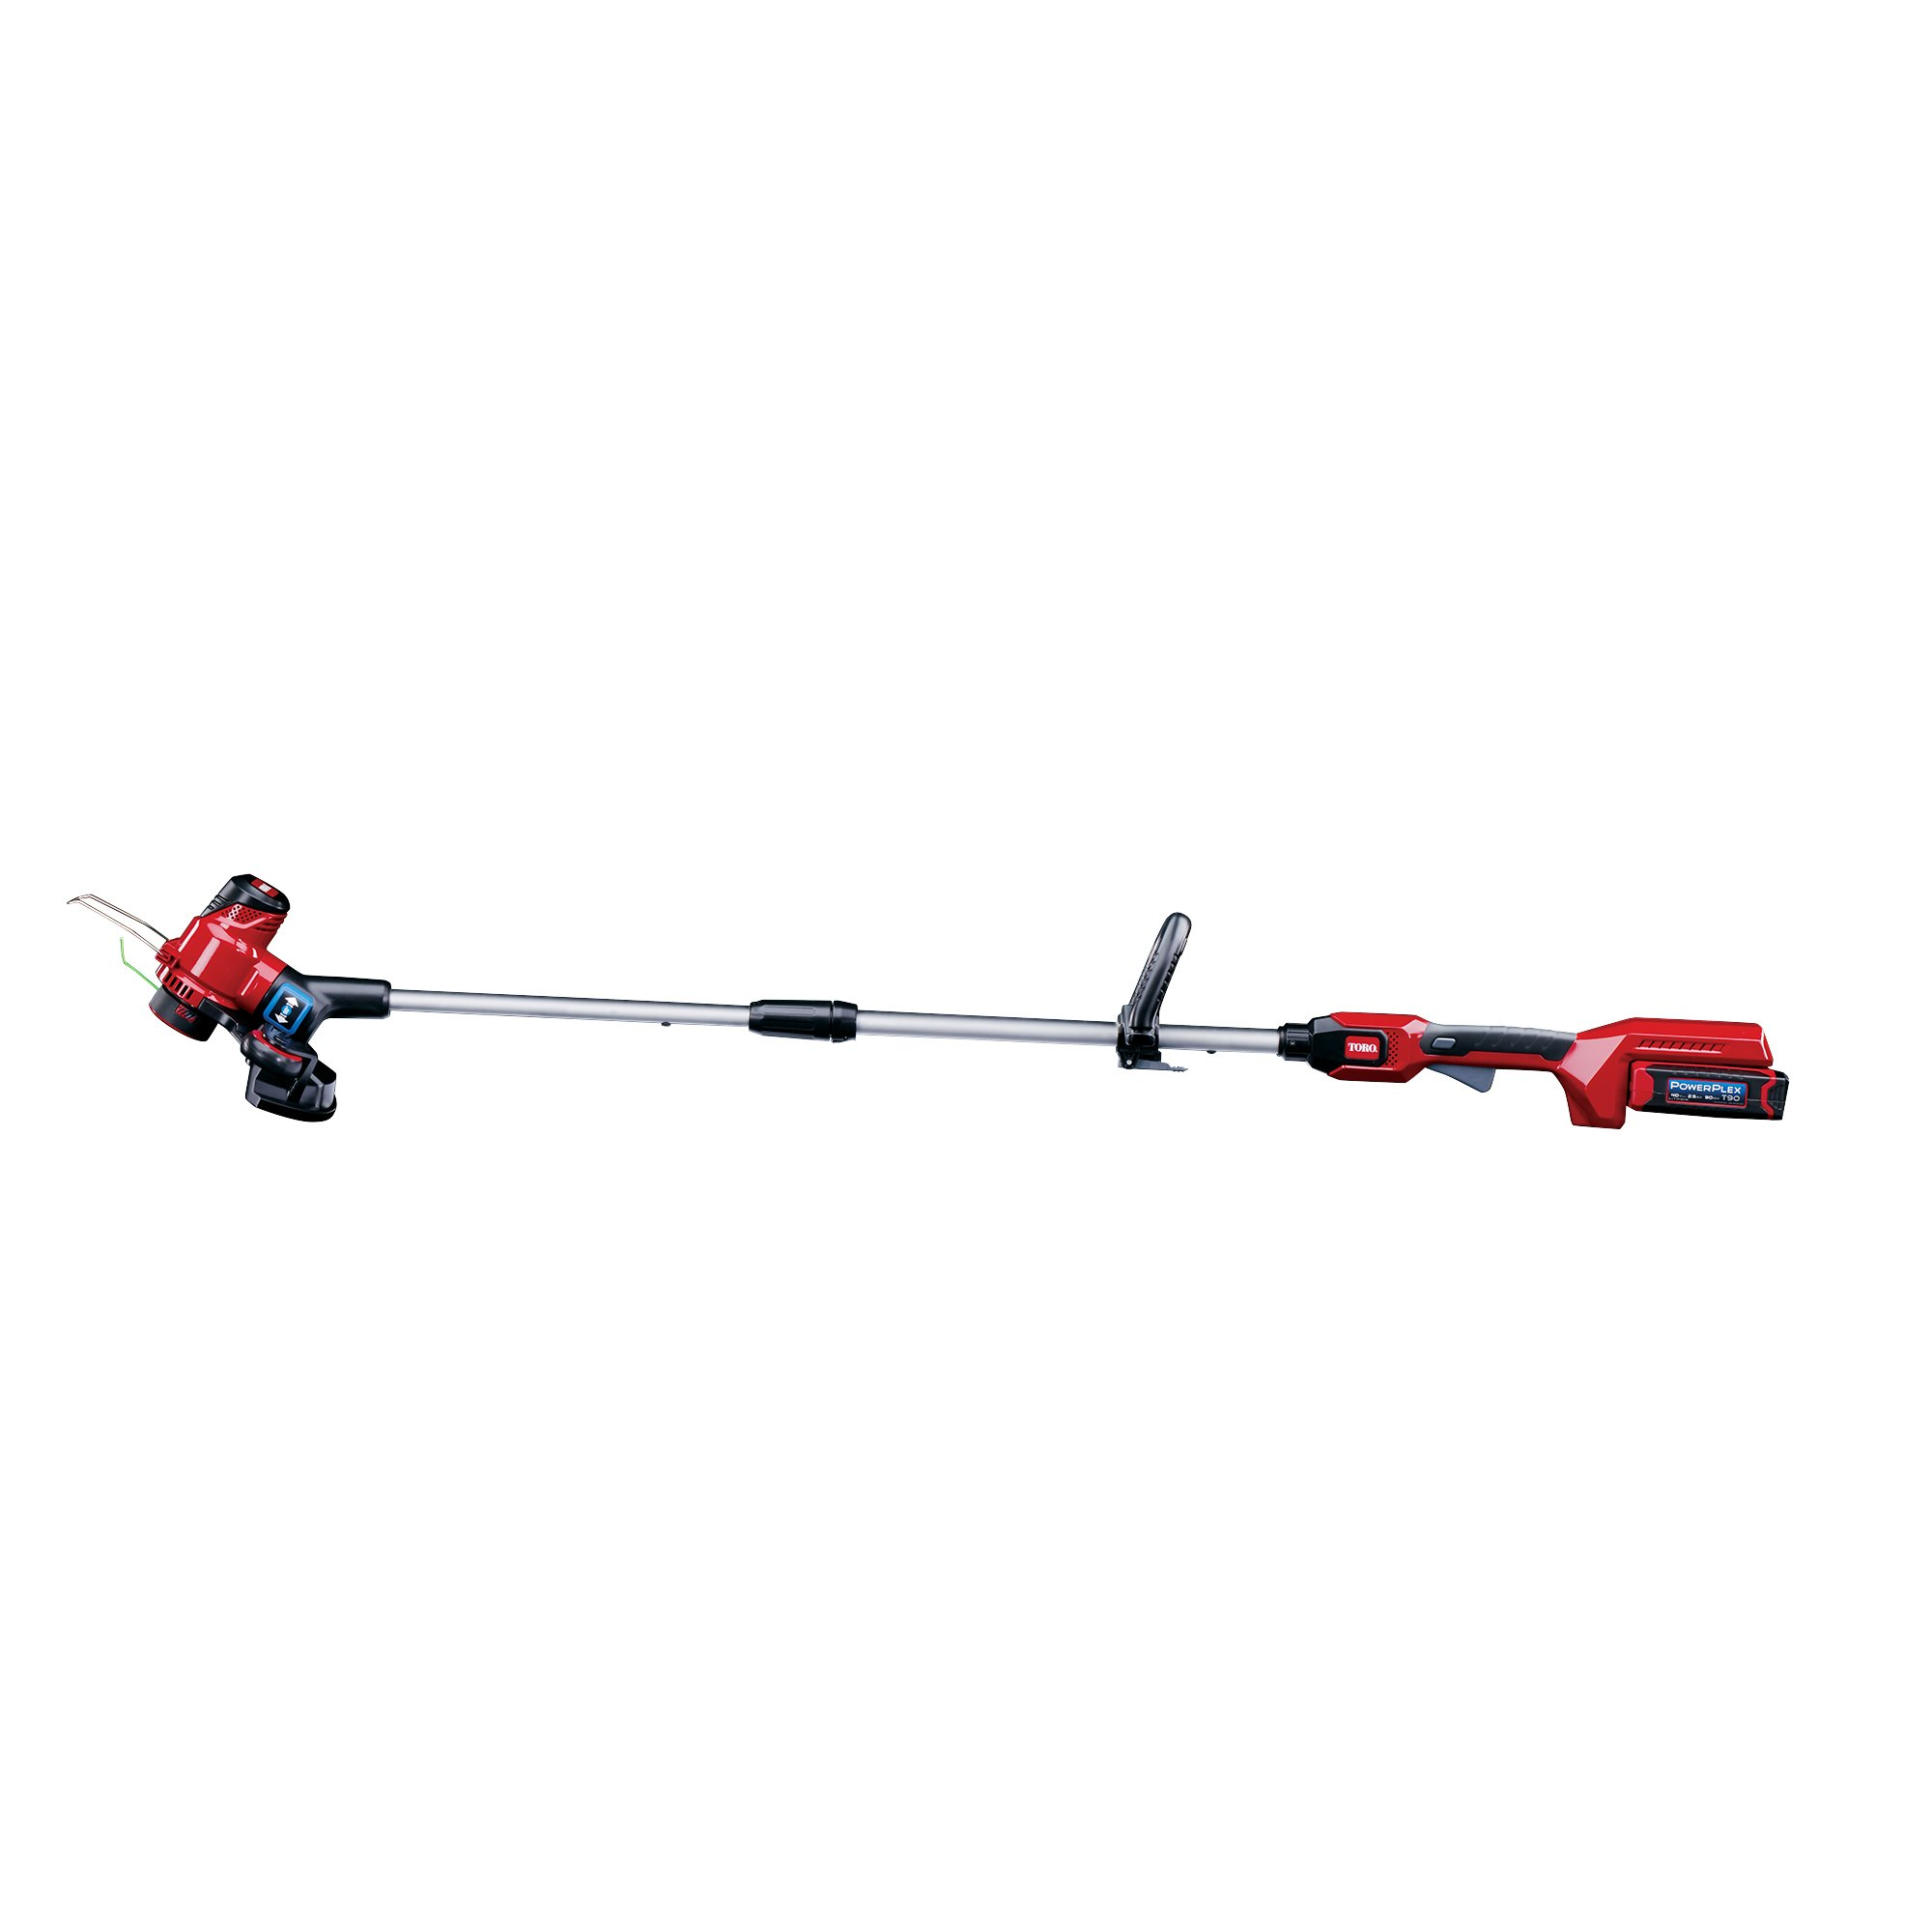 """Toro PowerPlex 51481 40V MAX Lithium Ion 13"""" Cordless String Trimmer/Edger, 2.5 Ah Battery & Charger Included"""